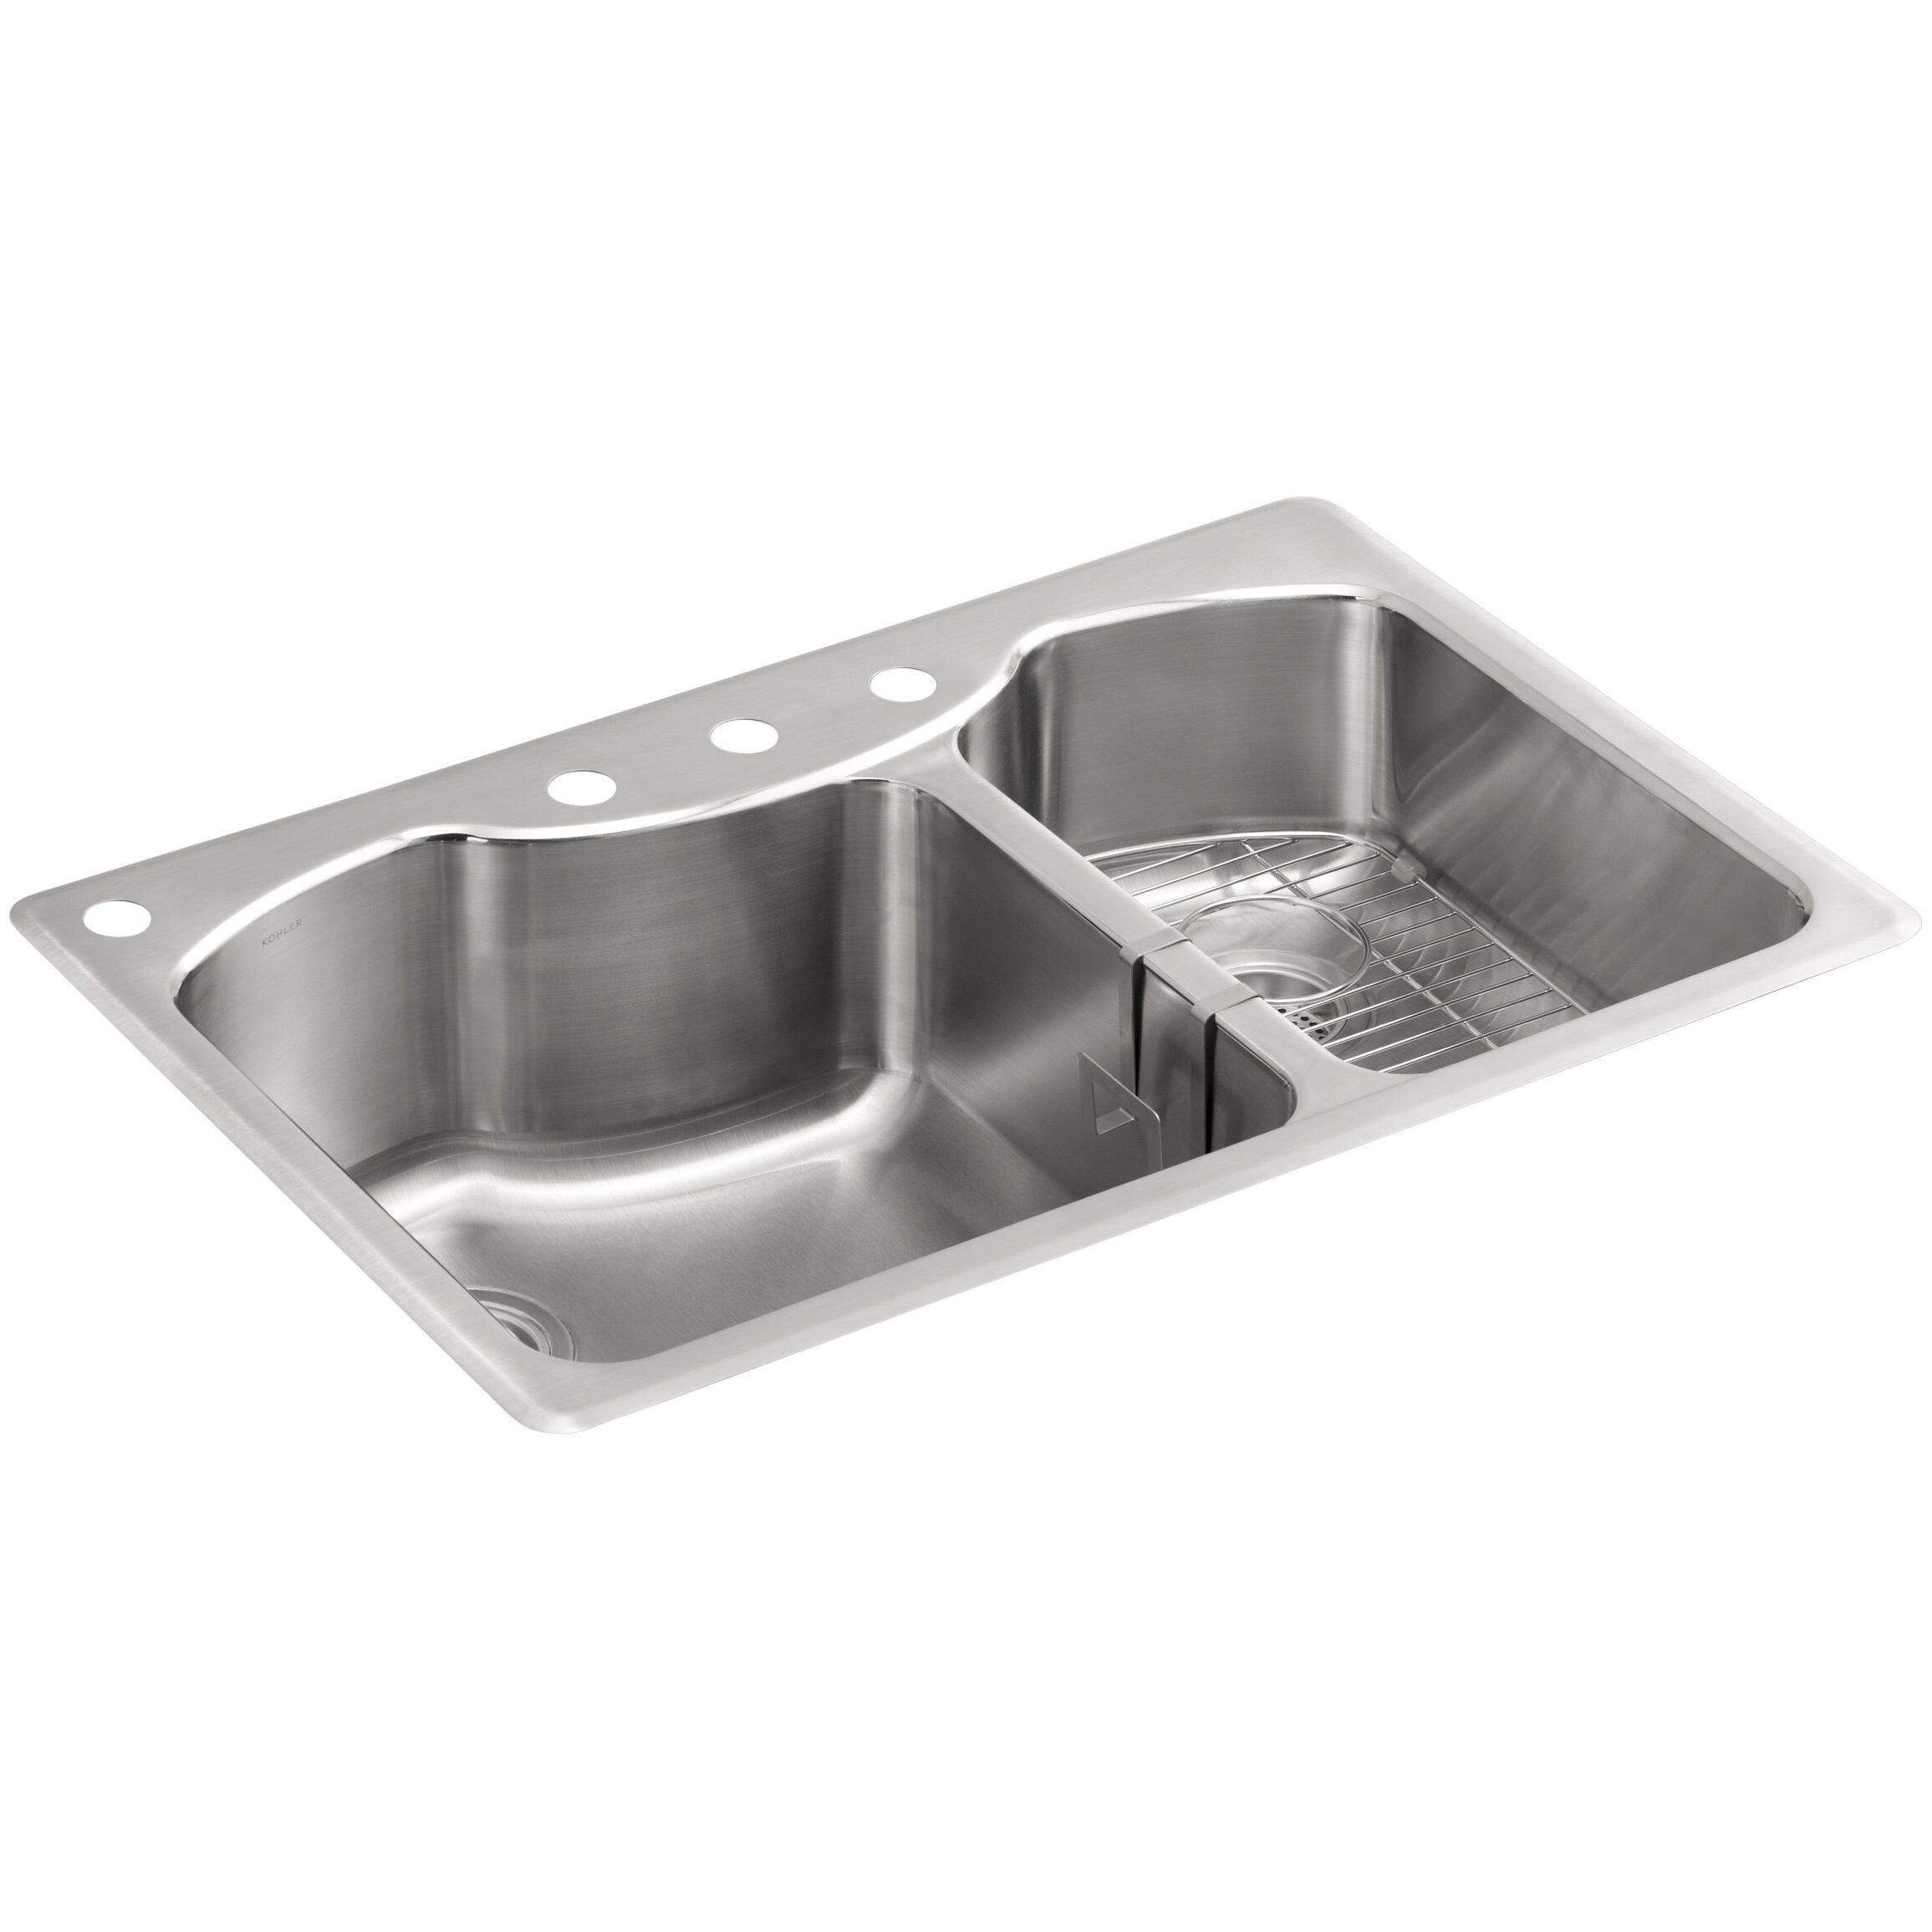 ... Top-Mount Large/Medium Double-Bowl Stainless Steel Kitchen Sink with